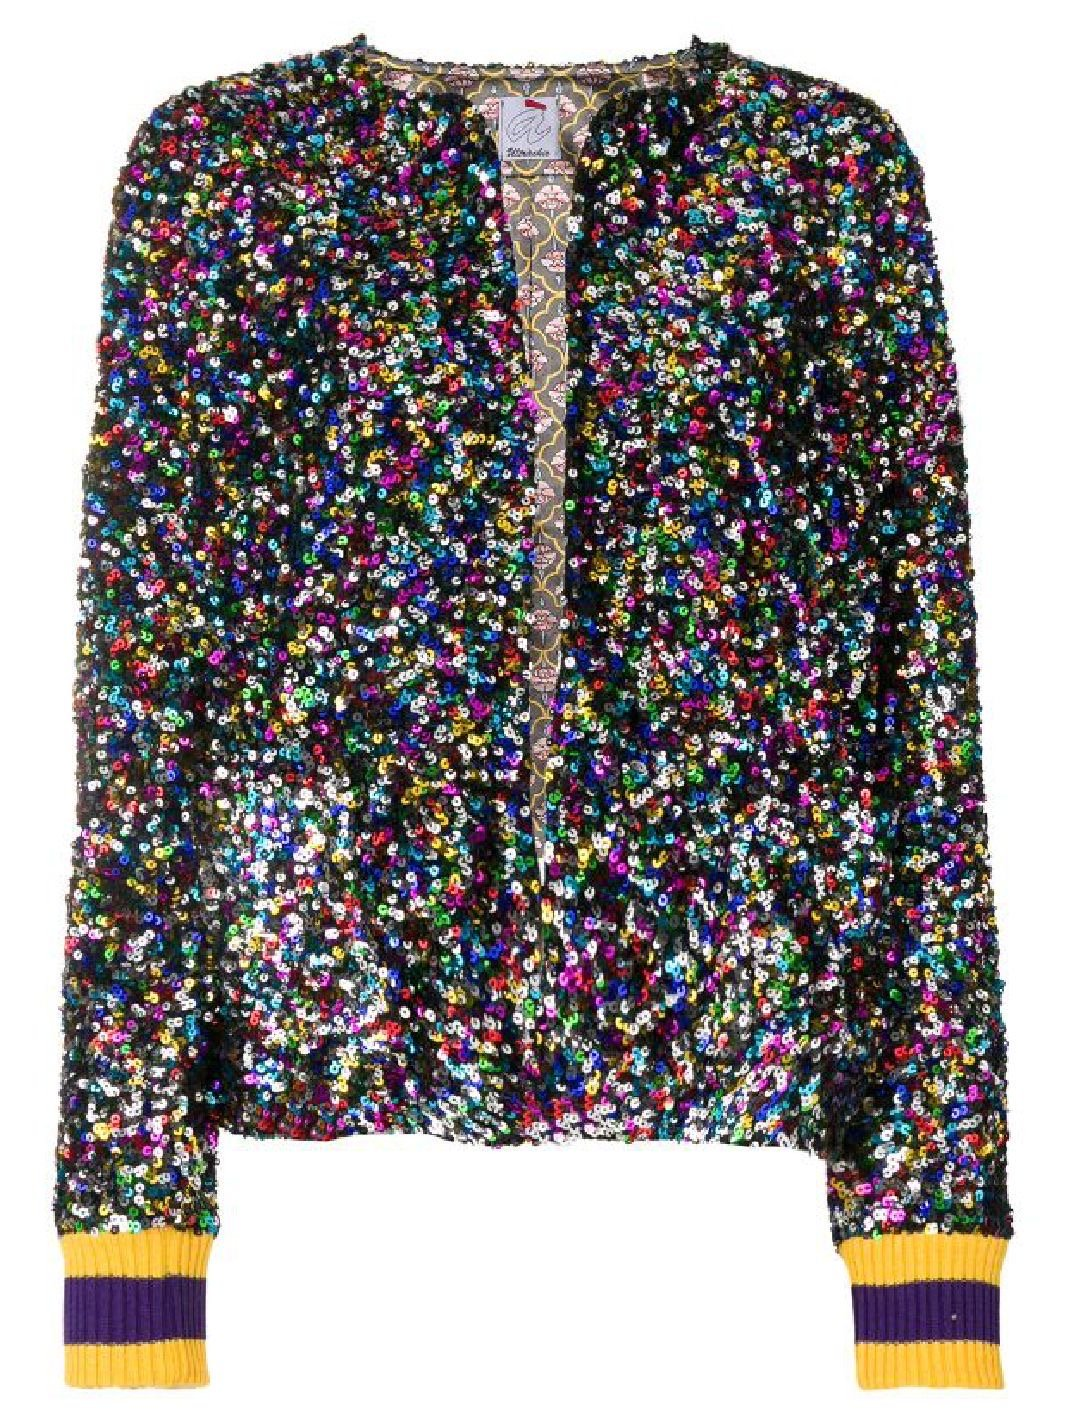 Sequin Embroidered Metallic Jacket - The Bobby Boga